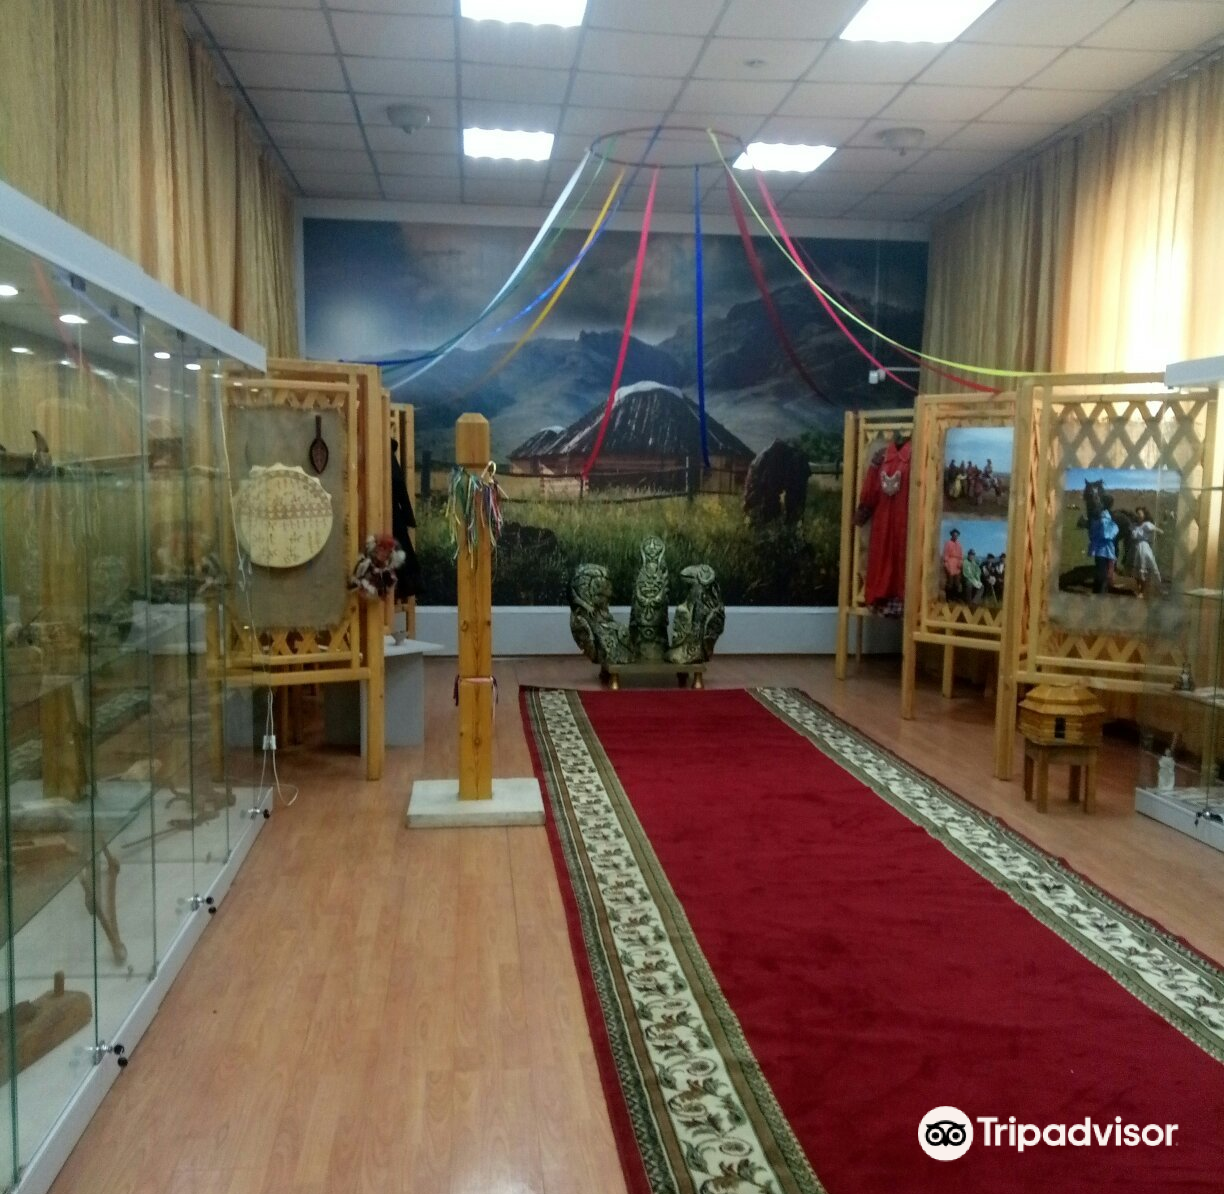 The History Museum Of The Krasnoyarsk Railroad On The Abakan Station Travel Guidebook Must Visit Attractions In Abakan The History Museum Of The Krasnoyarsk Railroad On The Abakan Station Nearby Recommendation